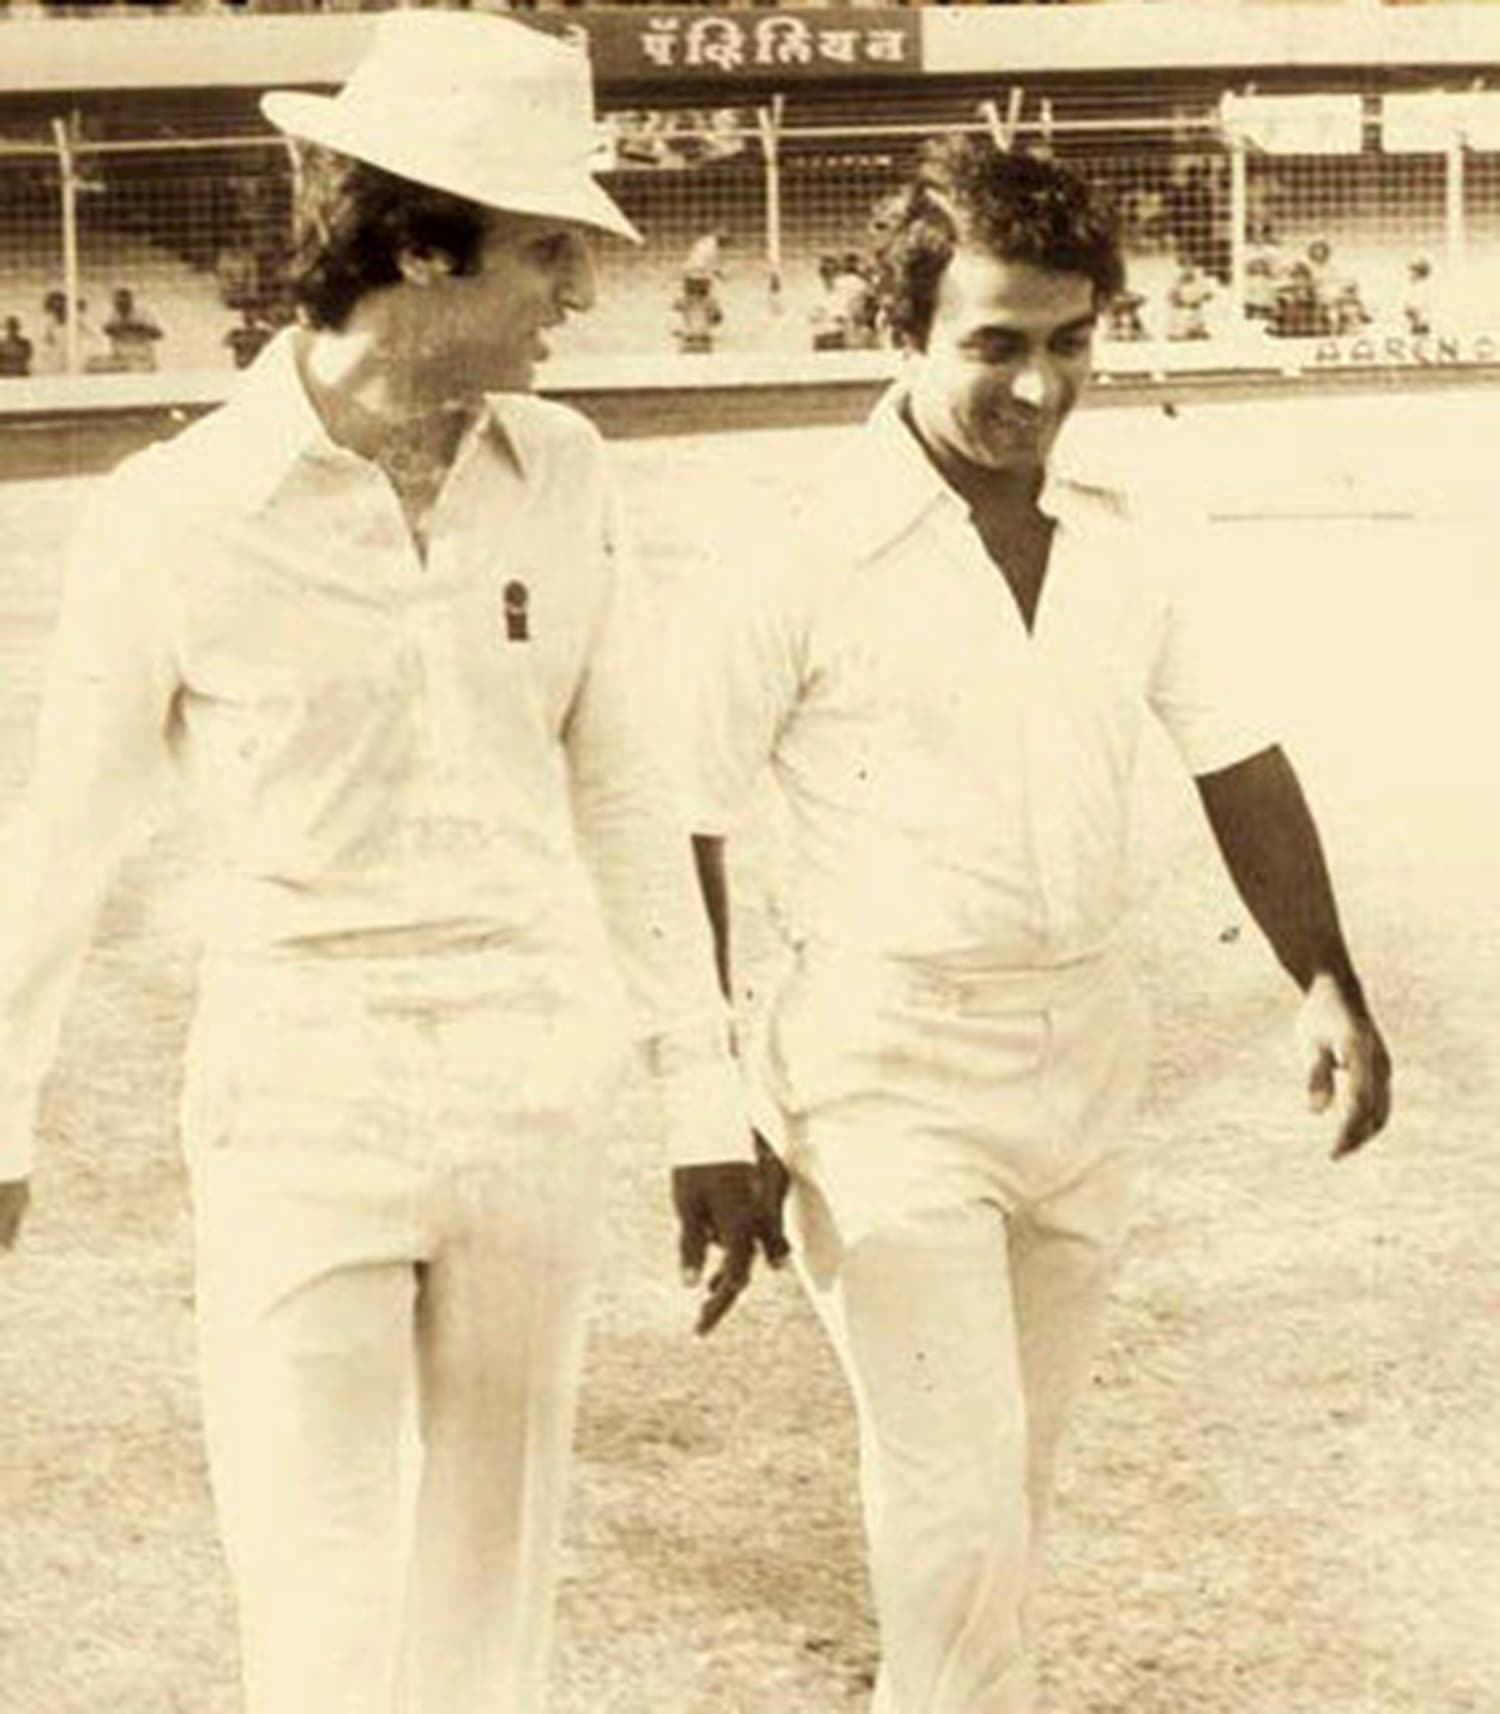 Asif with Indian captain Sunil Gavaskar, walks out for the toss in the last Test of the 1979 India-Pakistan series.